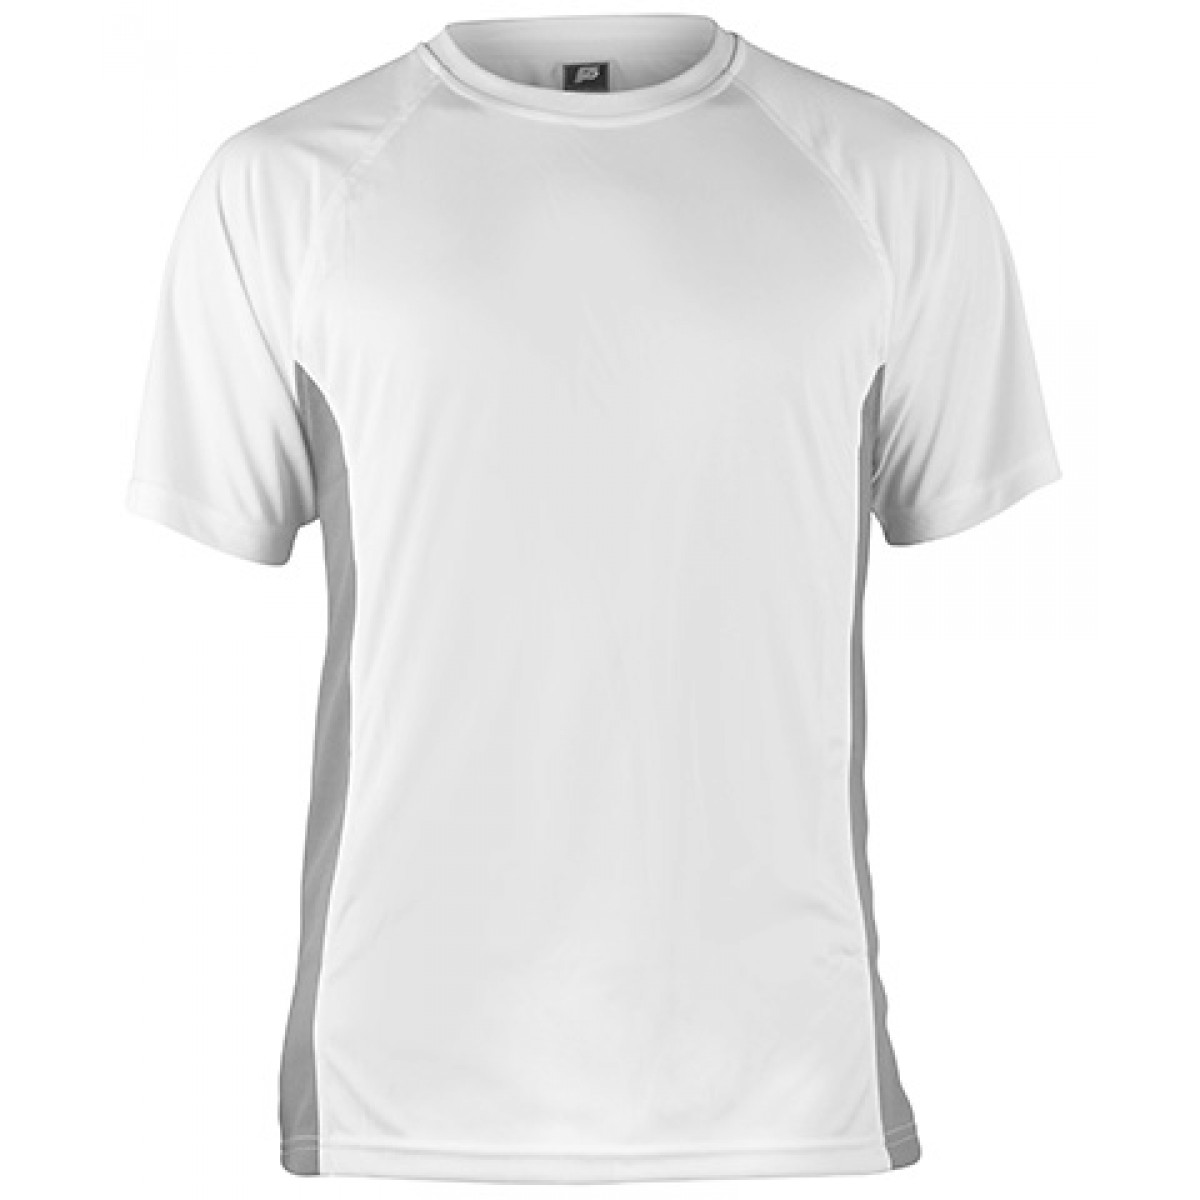 Short Sleeves Performance With Side Insert-White/Gray-2XL